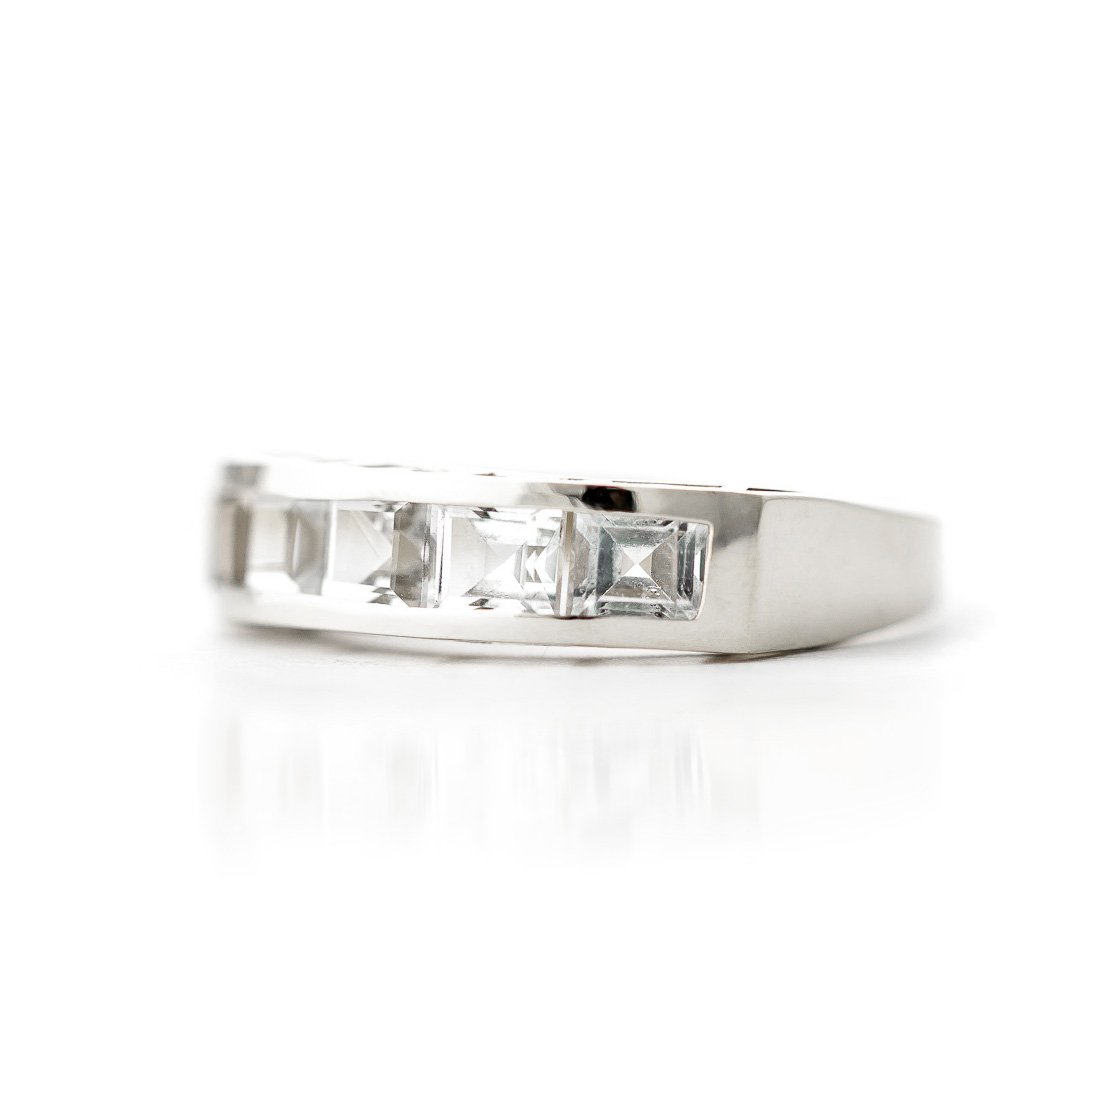 Square Cut White Topaz Ring 2.25ctw in 14K White Gold